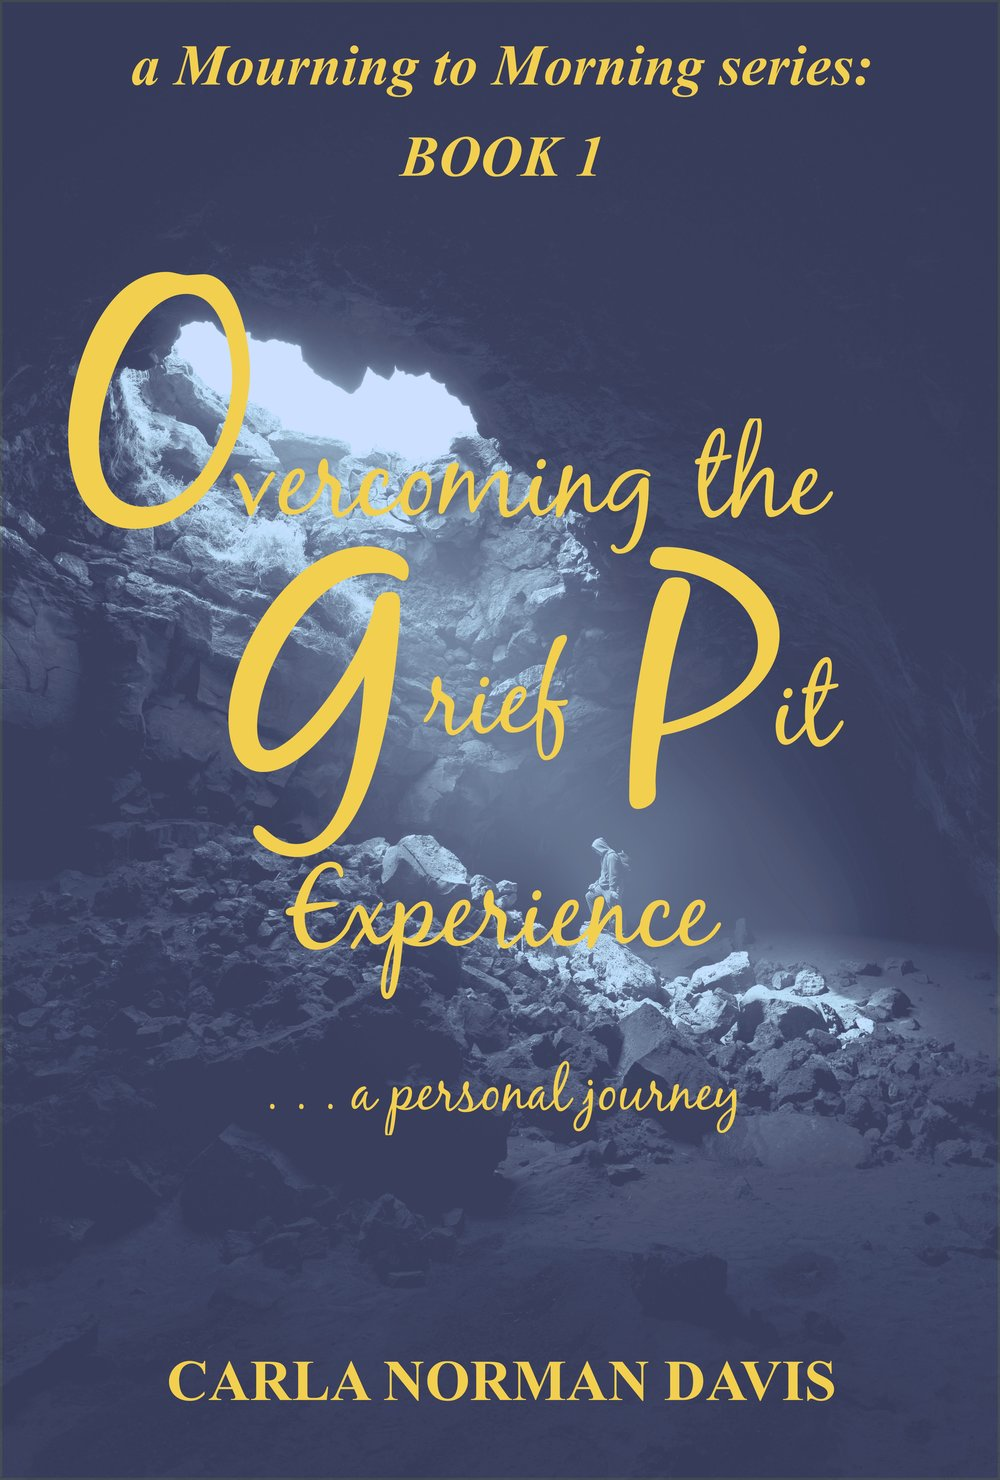 Book Cover - Overcoming the Grief Pit image.jpg